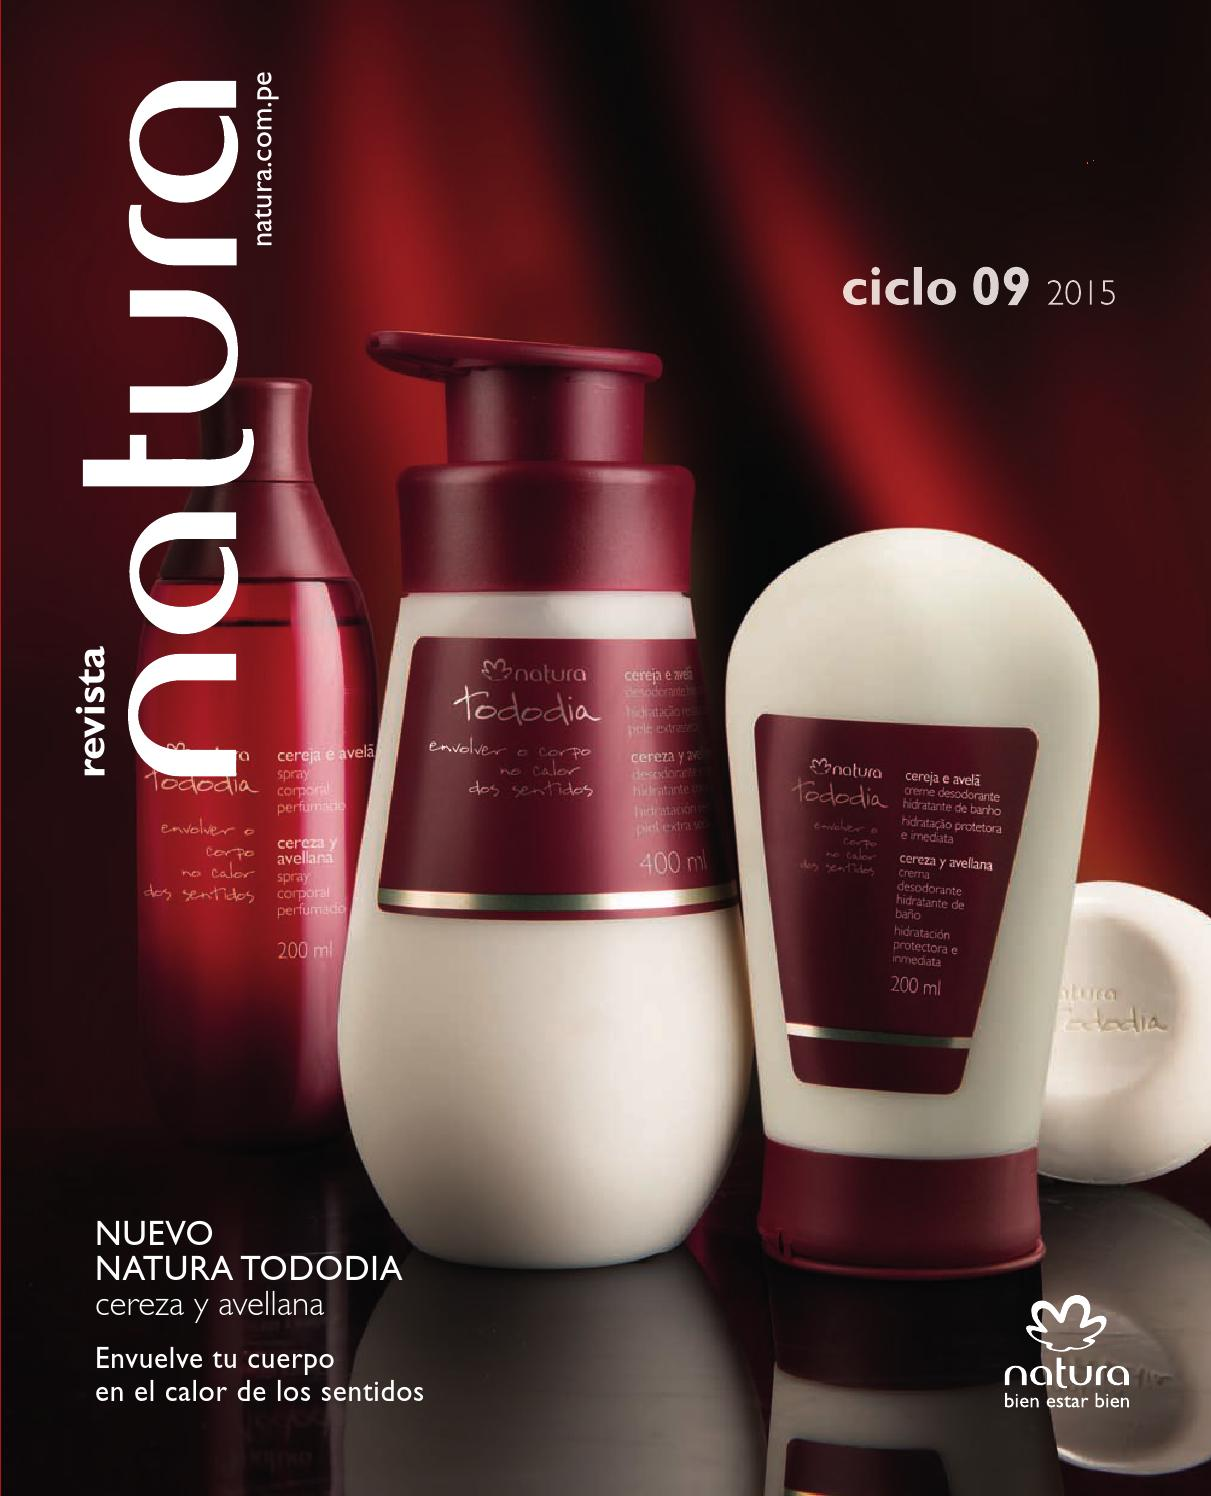 Revista natura peru ciclo 09 2015 by cat logos mujer issuu - Natura casa catalogo ...